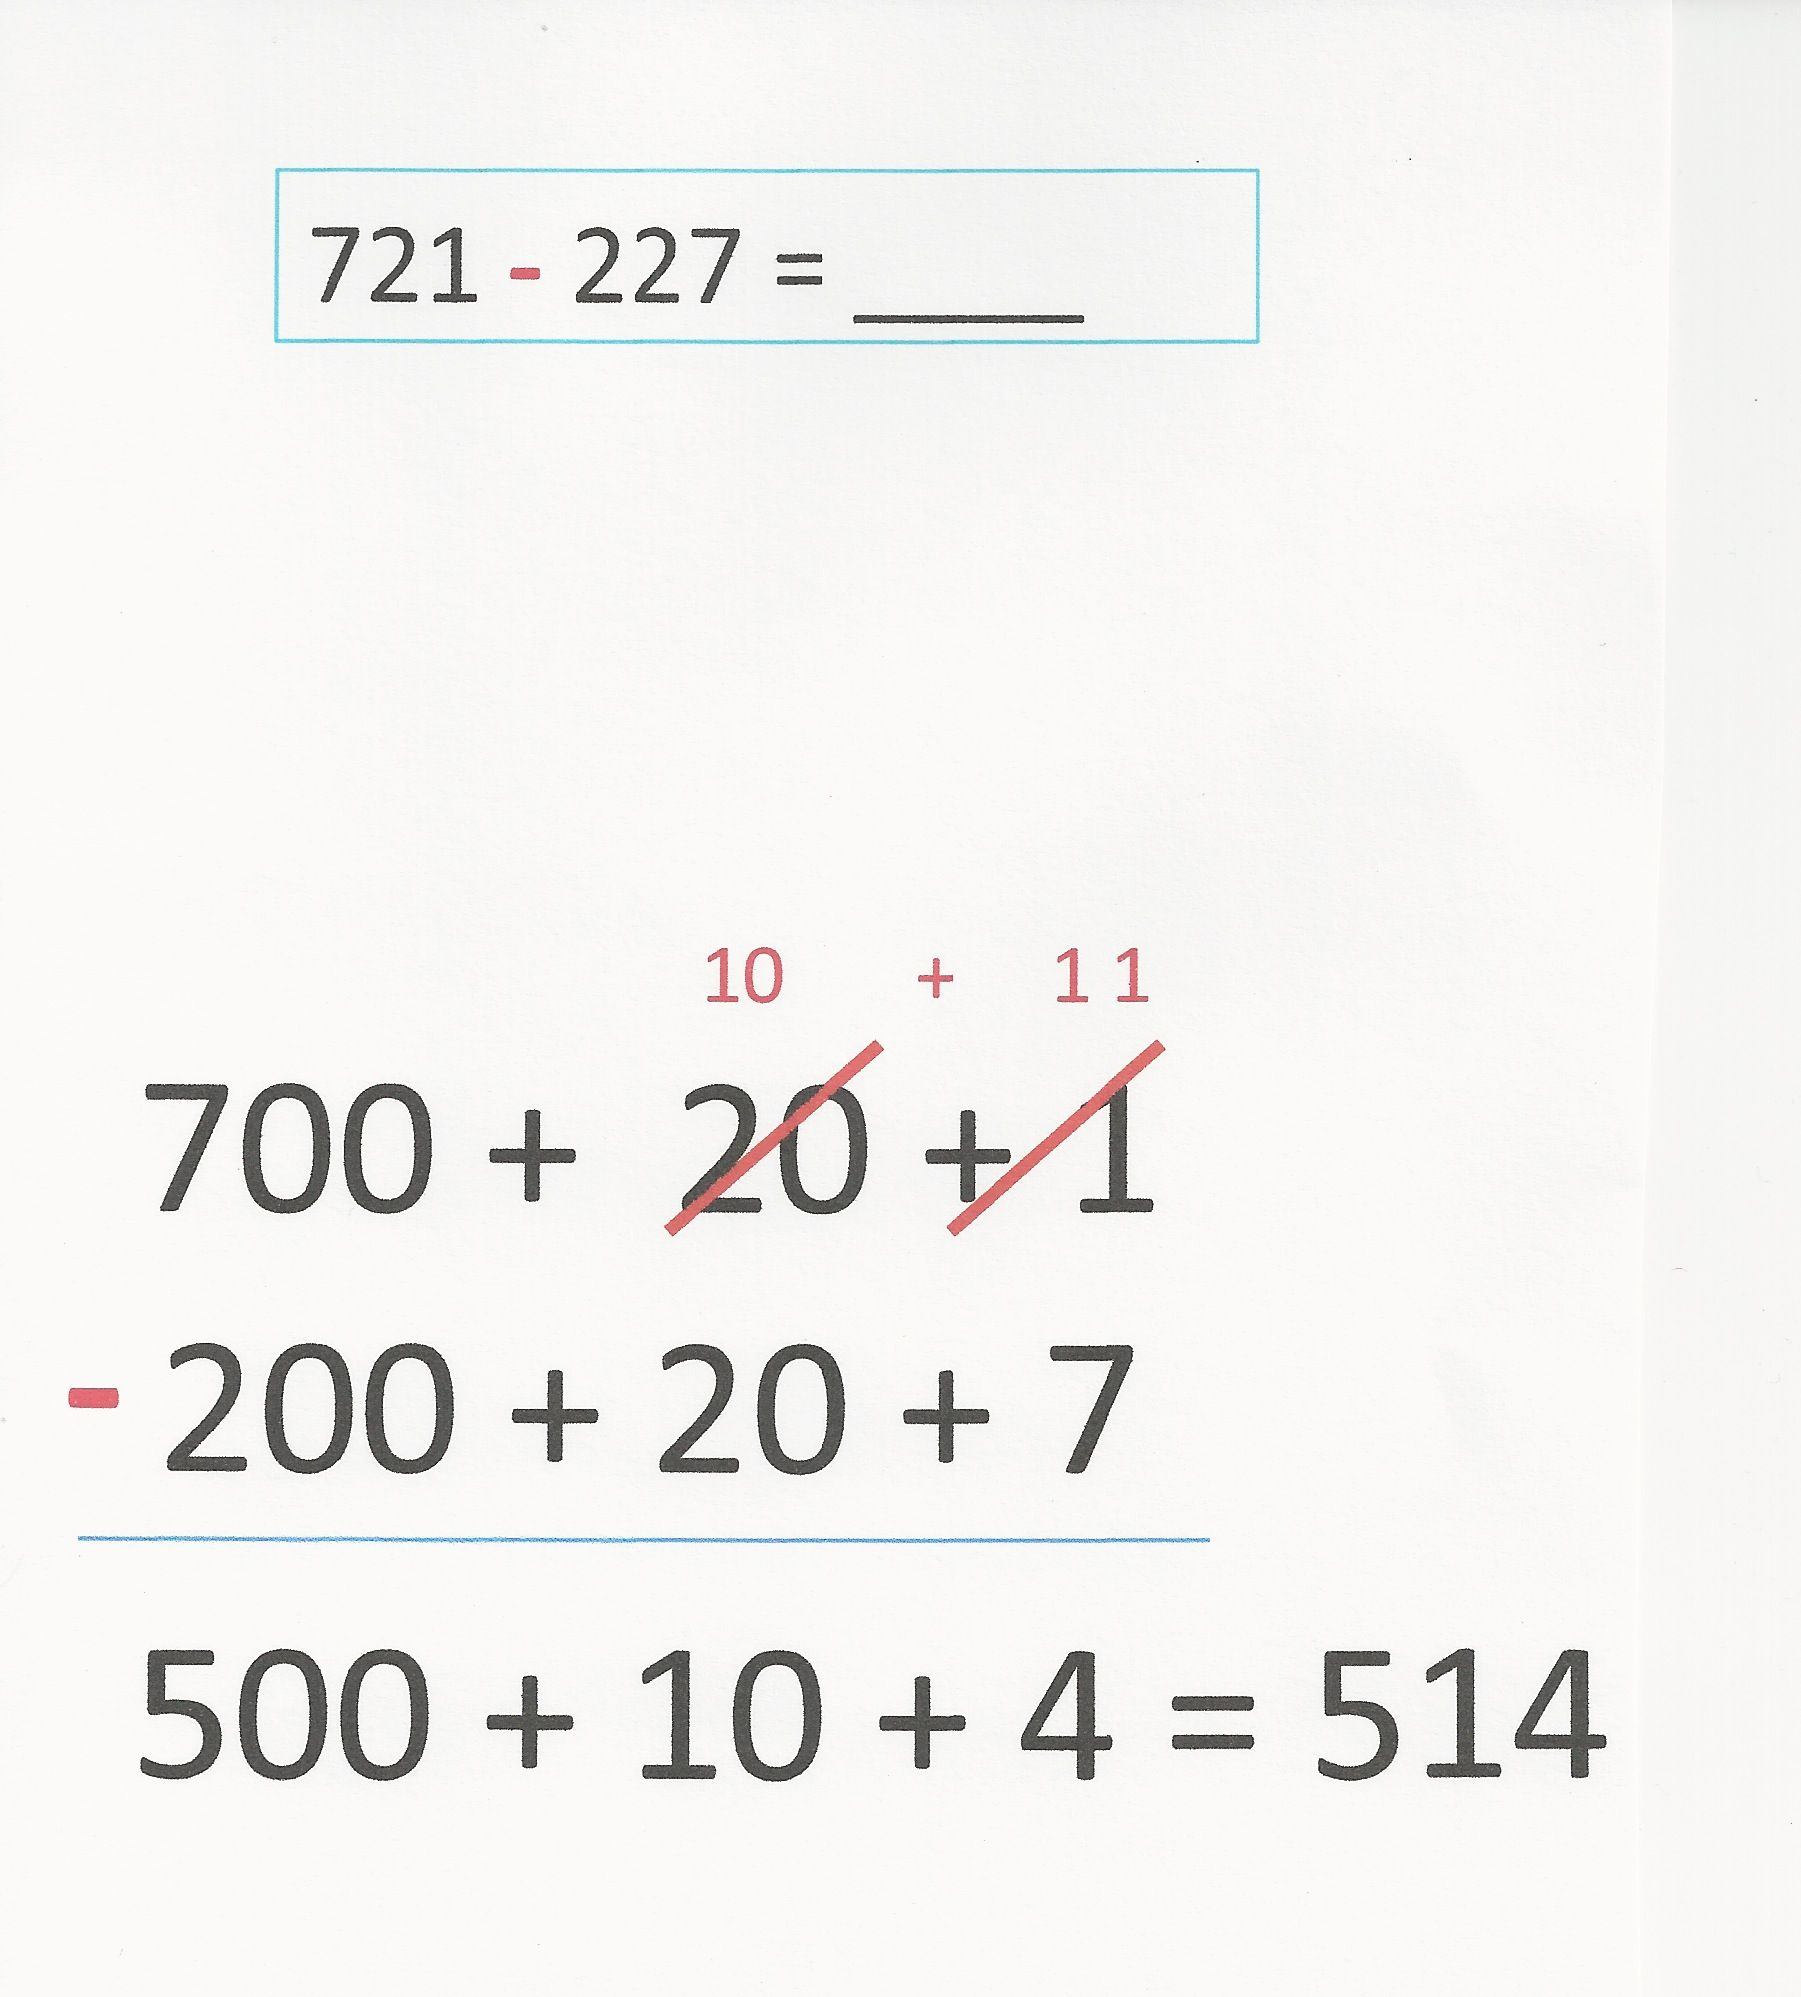 Add and subtract within 1000, using concrete models or